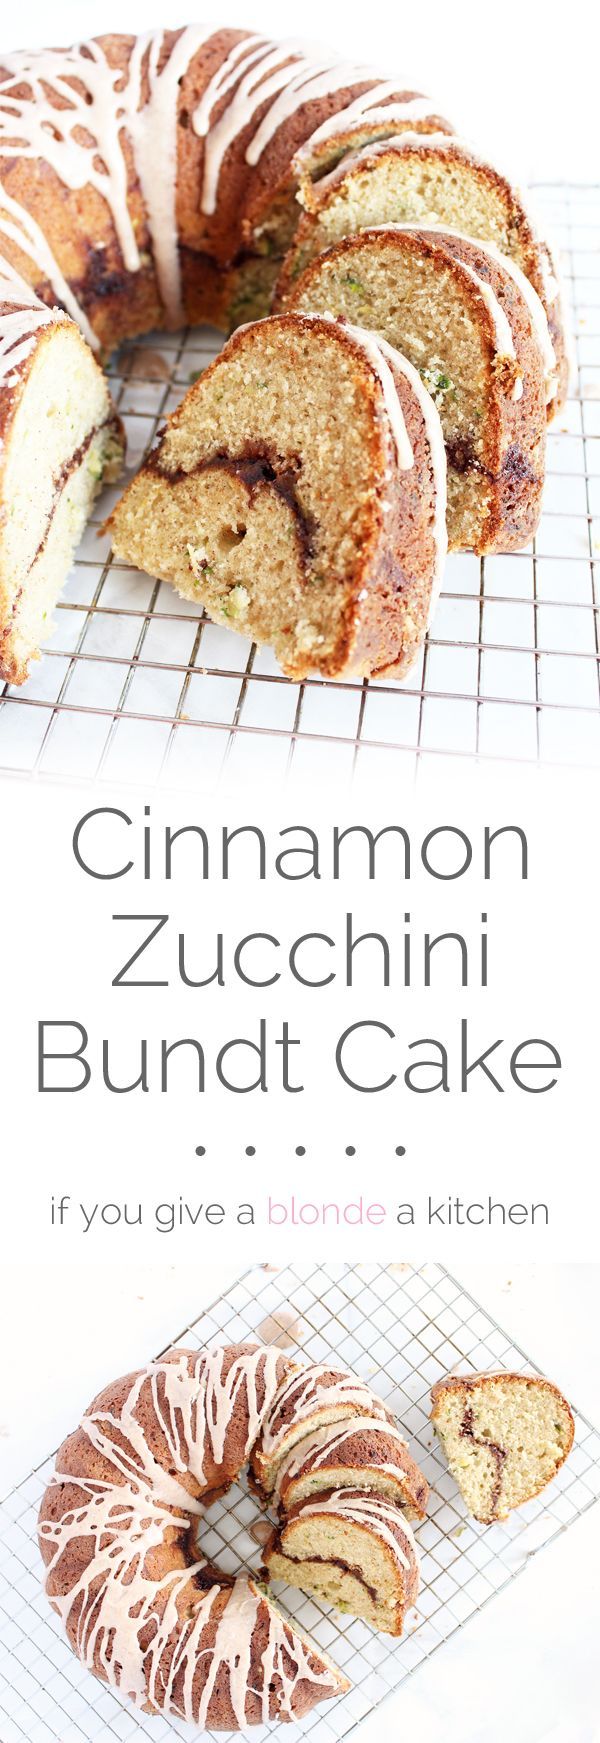 Cinnamon zucchini bundt cake combines cinnamon swirl cake with zucchini bread to create a deliciously sweet late-summer dessert. | www.ifyougiveablondeakitchen.com